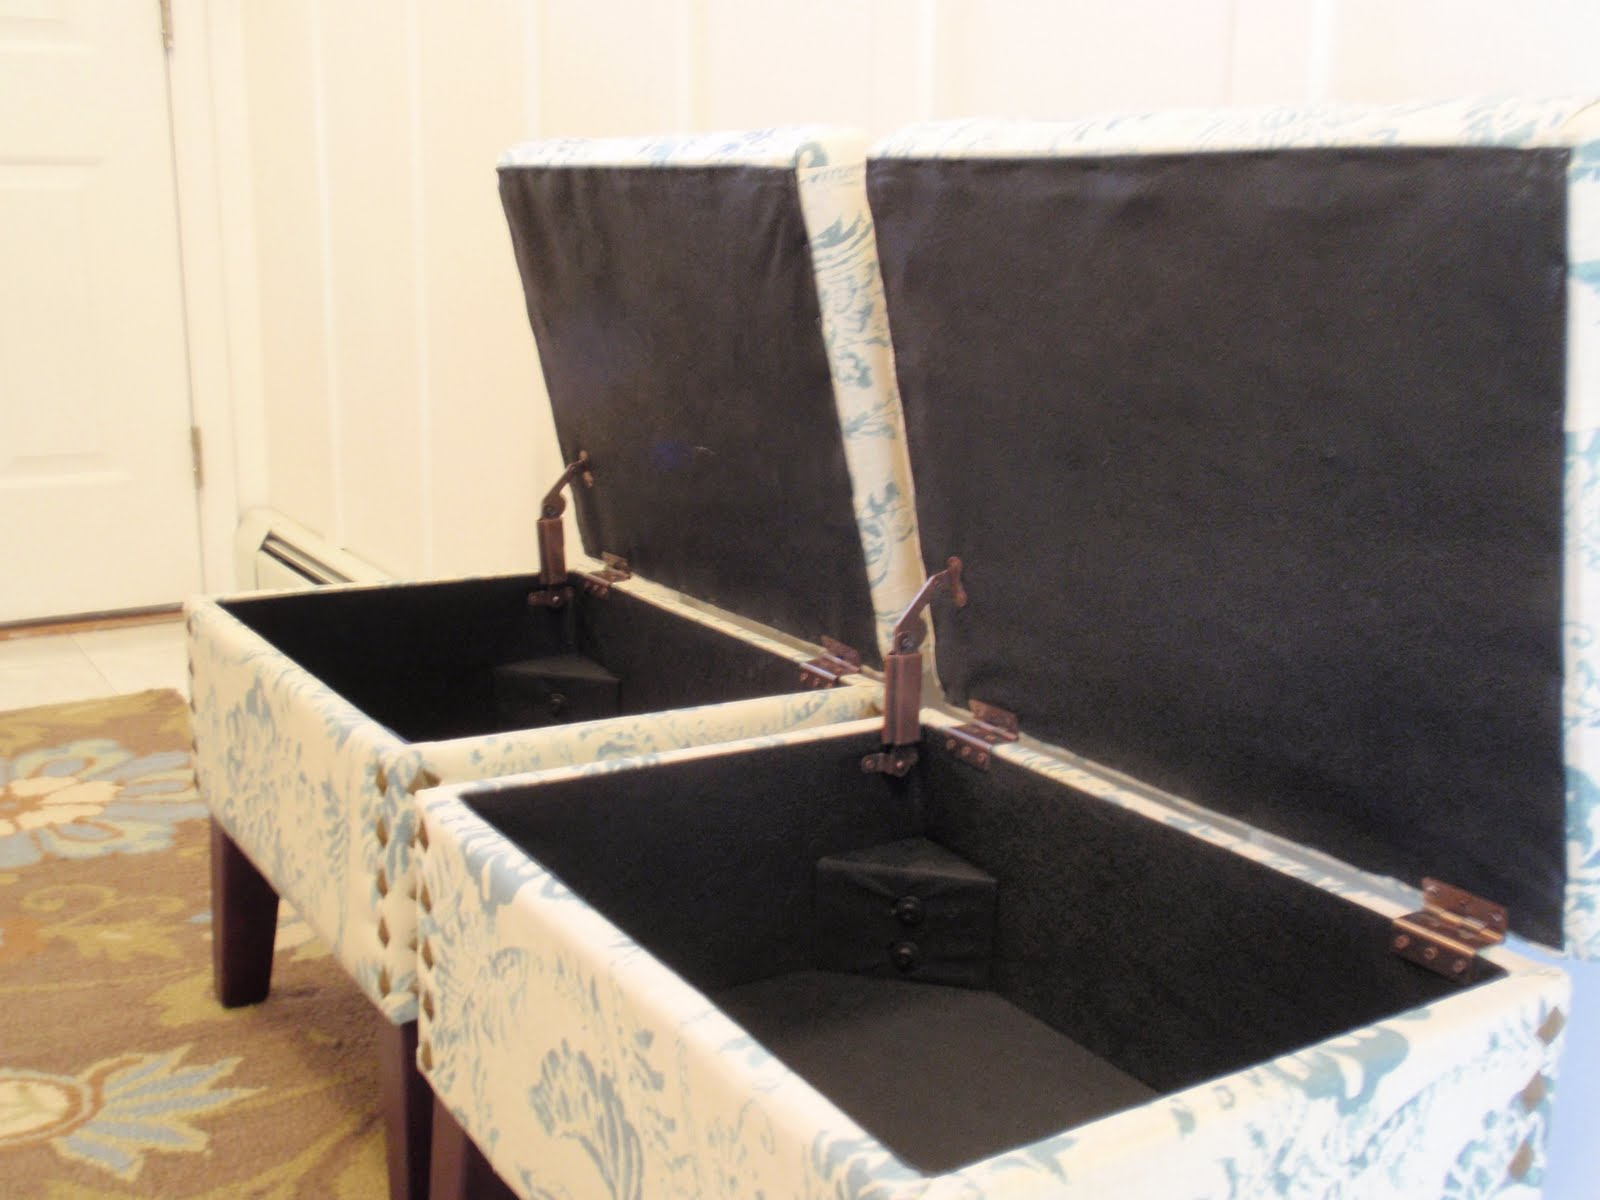 How to build a storage ottoman - 2 Kids Plus All Their Stuff 2 Storage Ottomans The Perfect Mudroom Benches